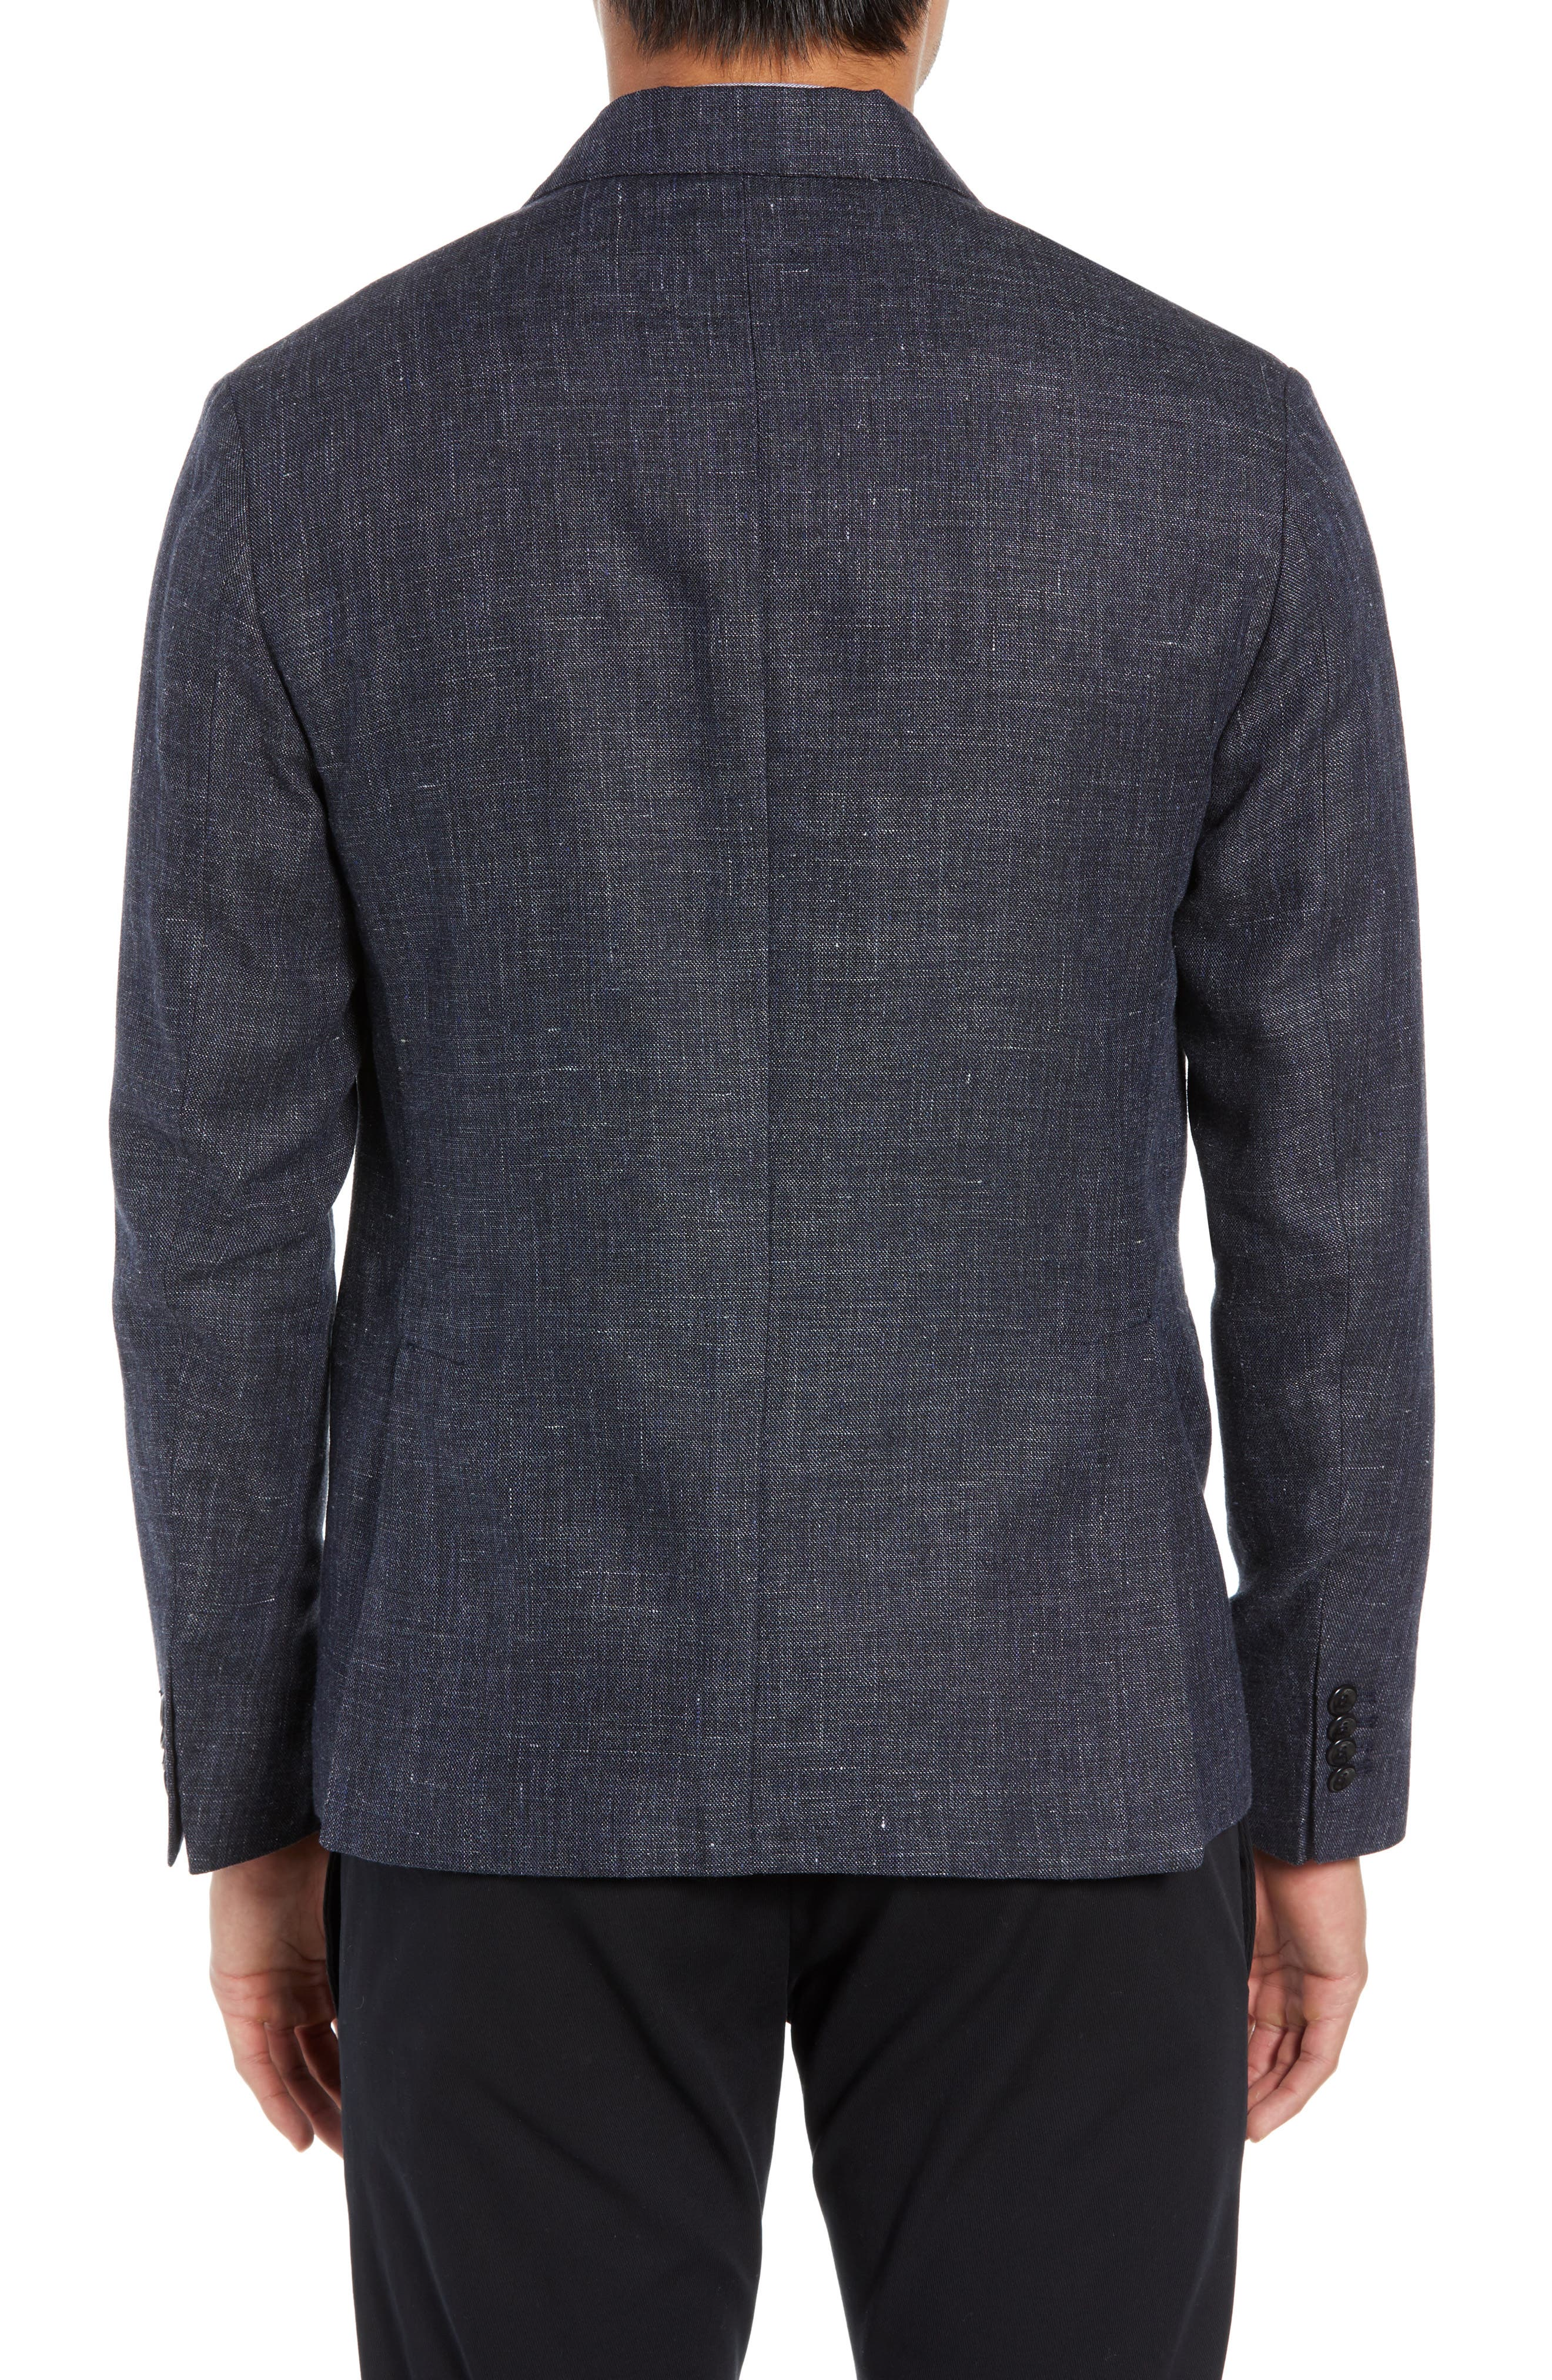 Slim Fit Unconstructed Wool & Linen Blazer,                             Alternate thumbnail 2, color,                             410